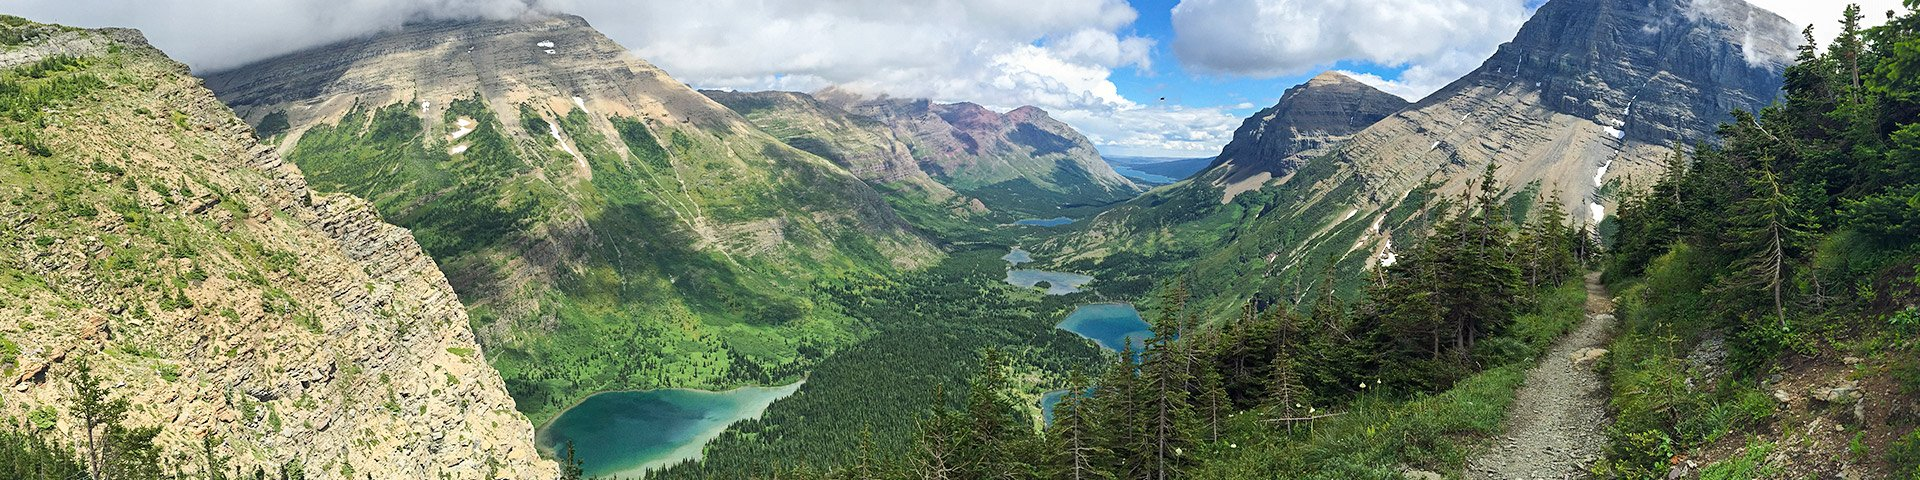 Panoramic views from the Swiftcurrent Pass hike in Glacier National Park, Montana